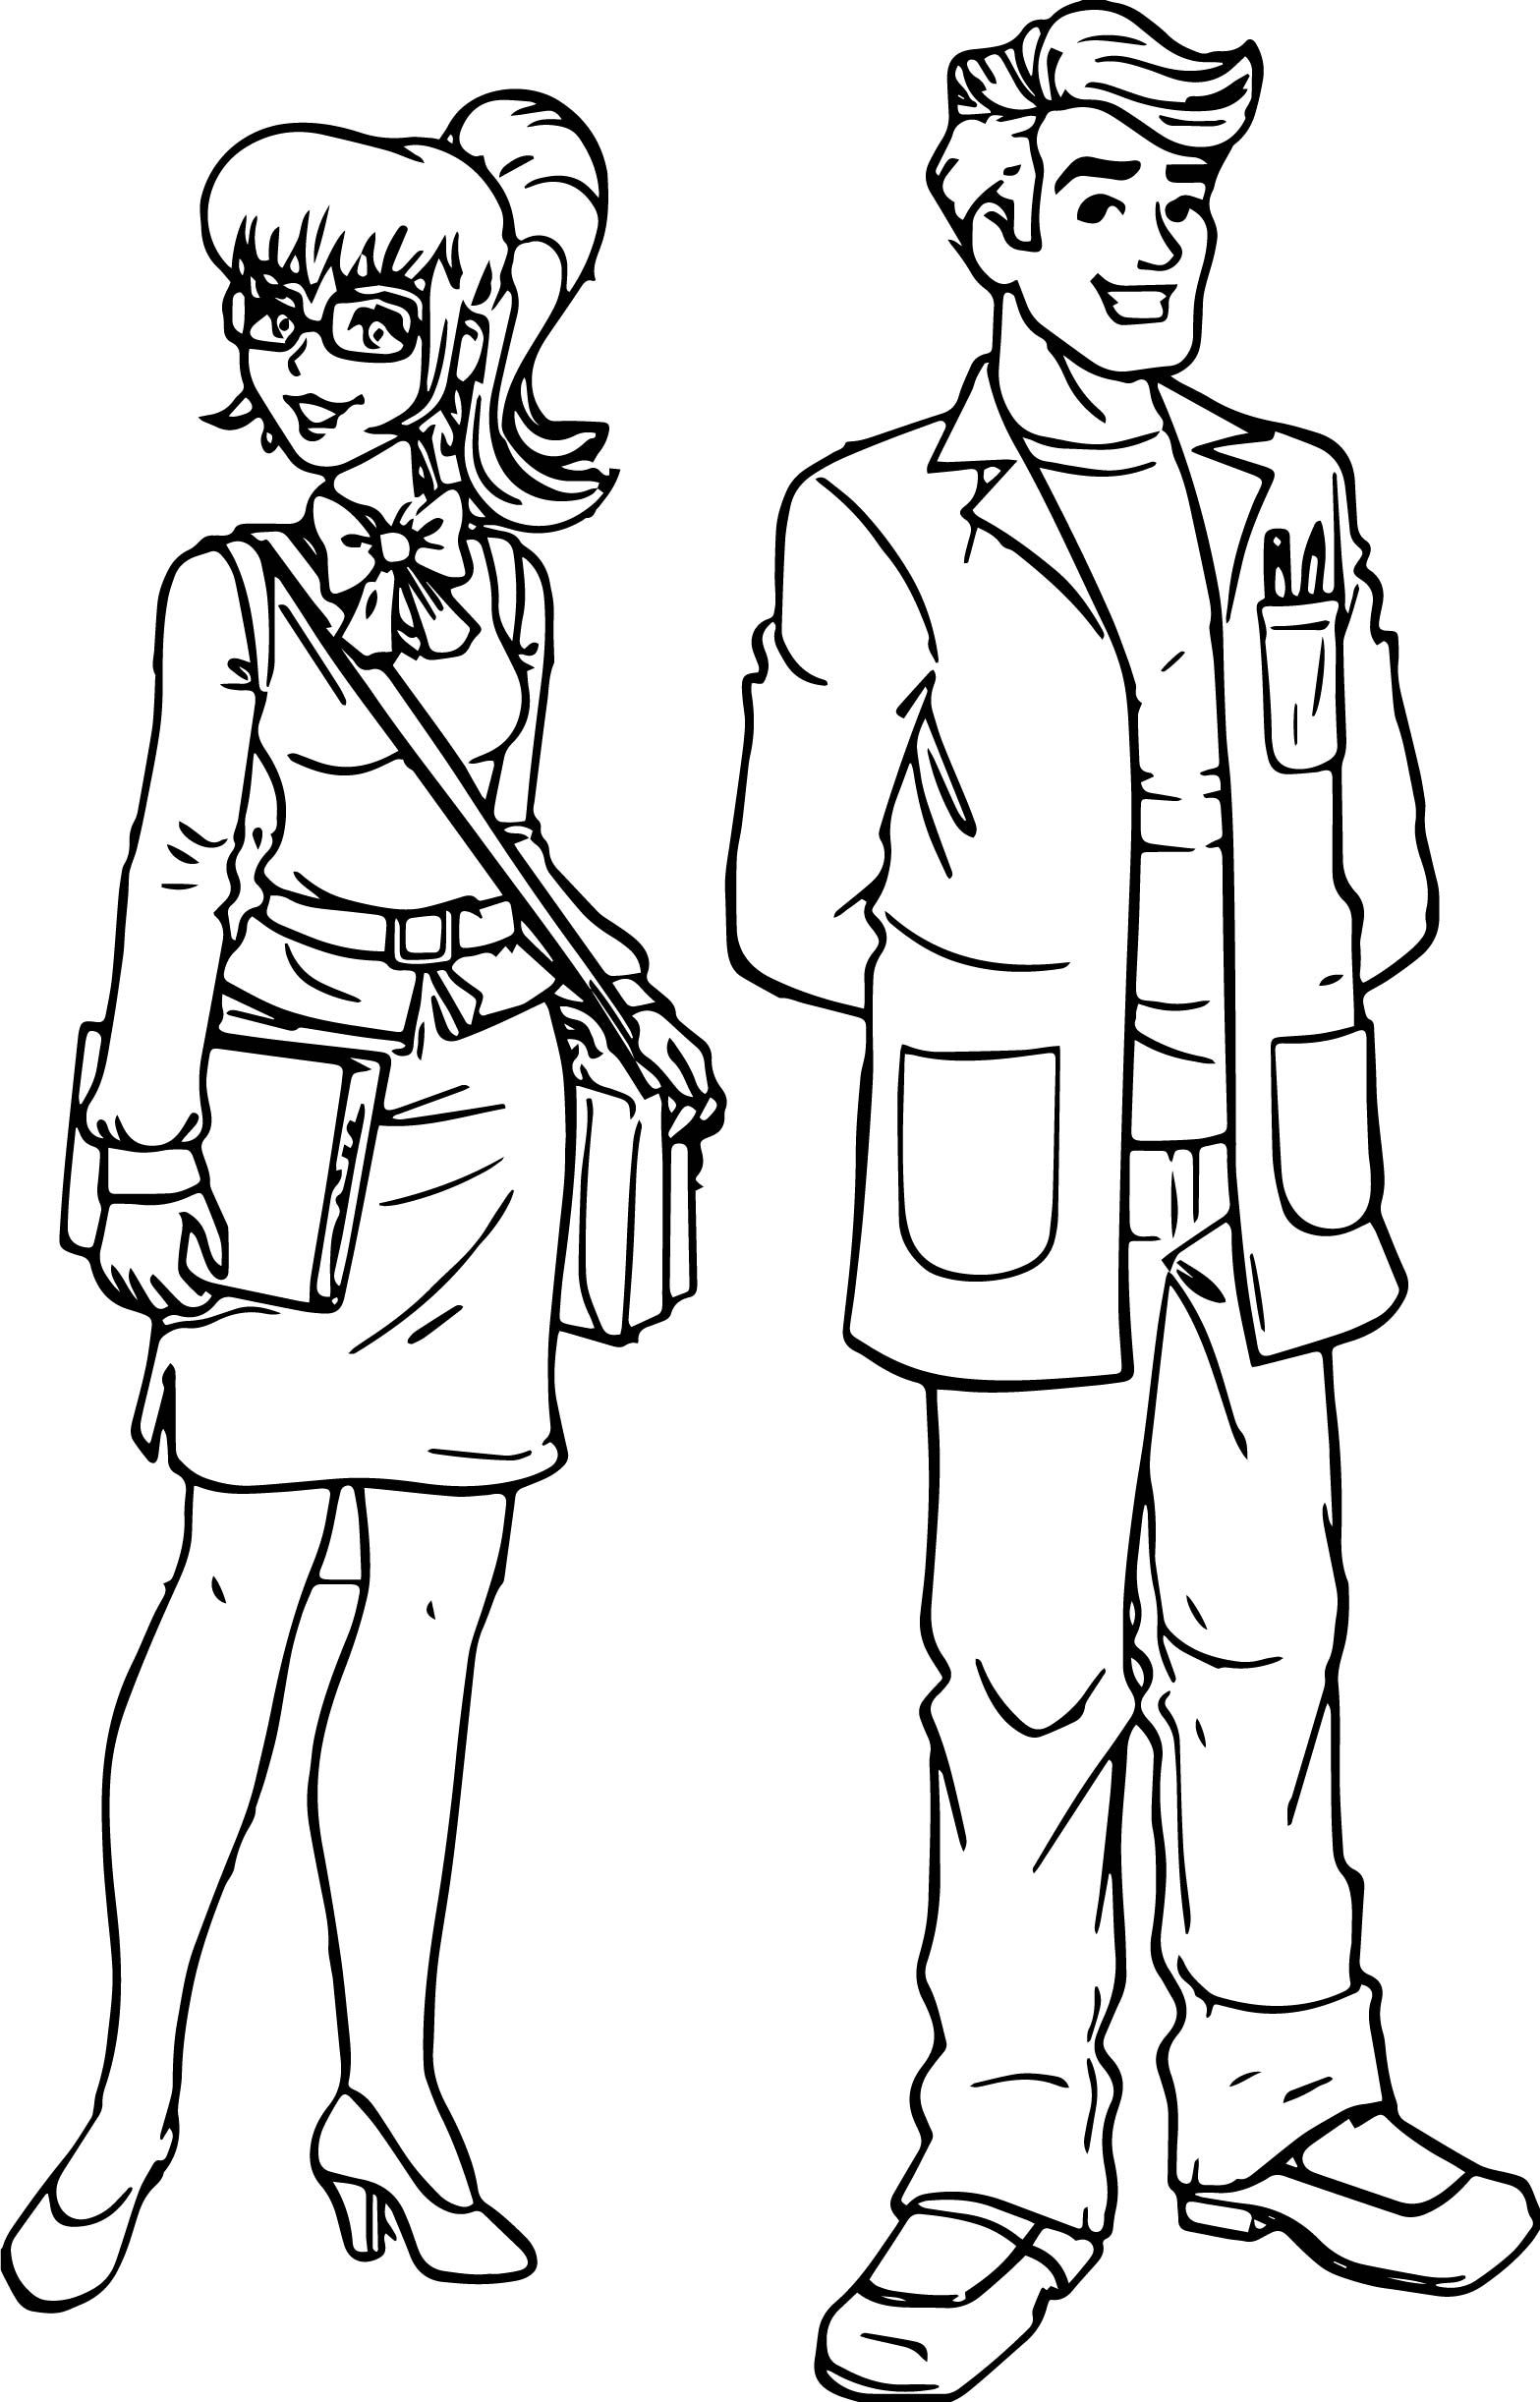 Woman Teacher Monica And Man Teacher Coloring Page Coloring